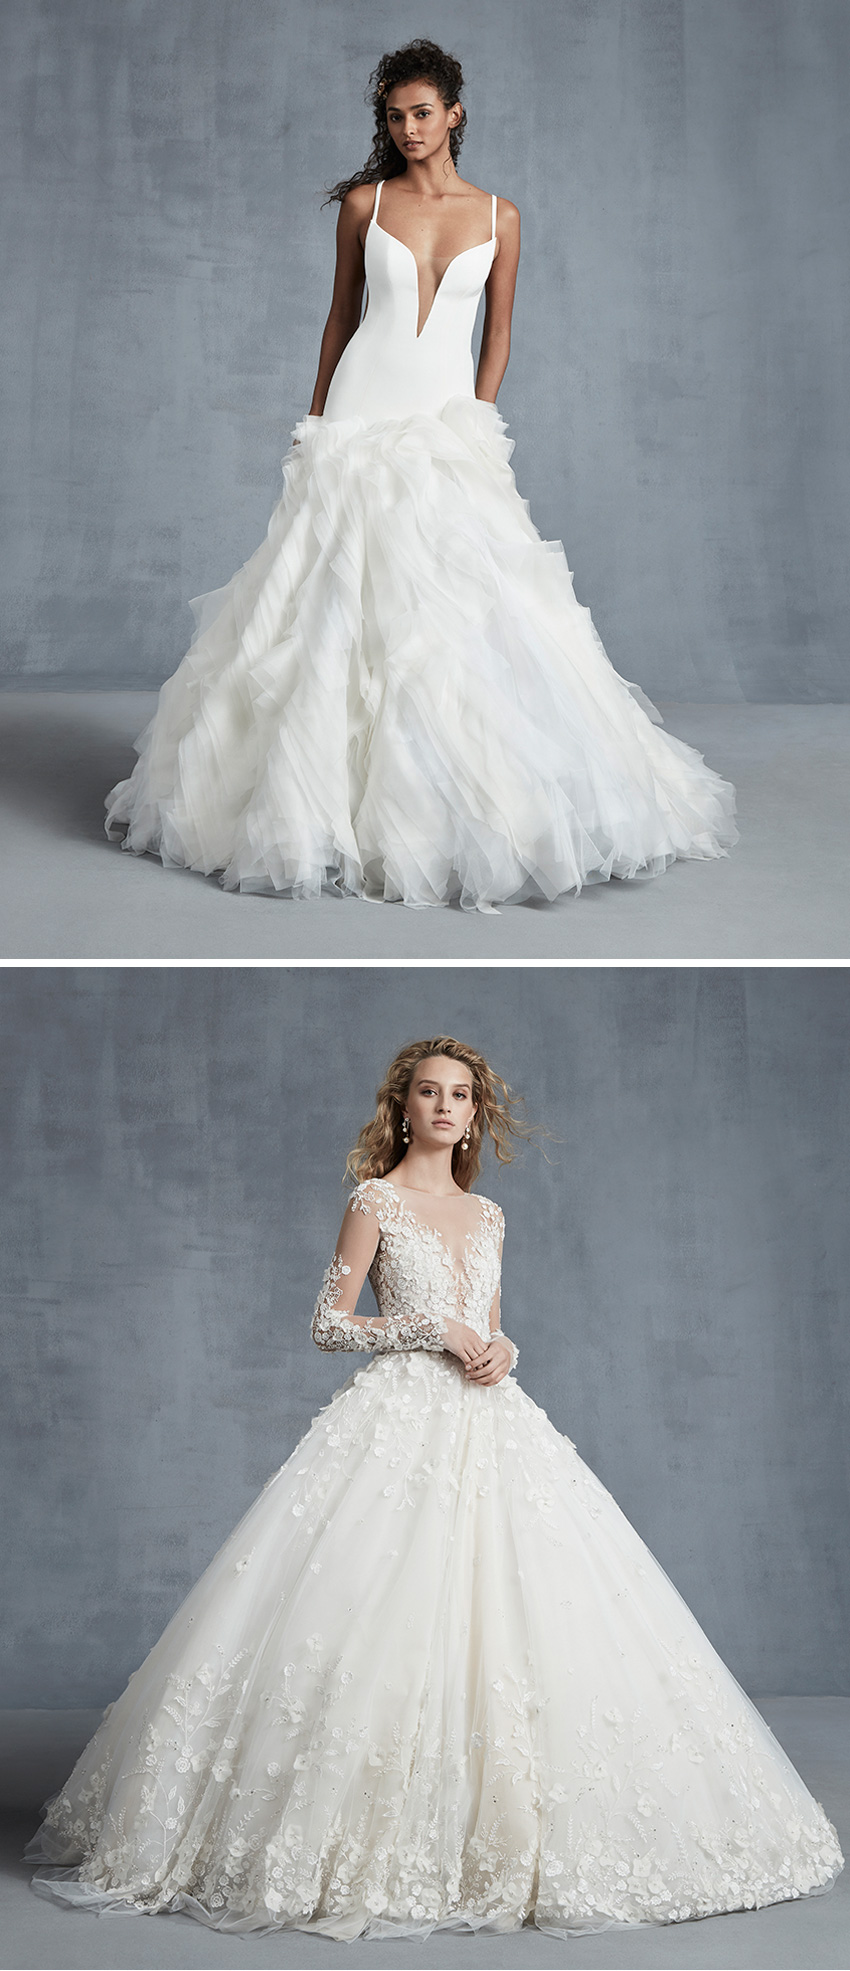 Ines Di Santo Fall 2021 bridal collection includes the designer's signature ballgowns featured in Perfect Wedding Magazine